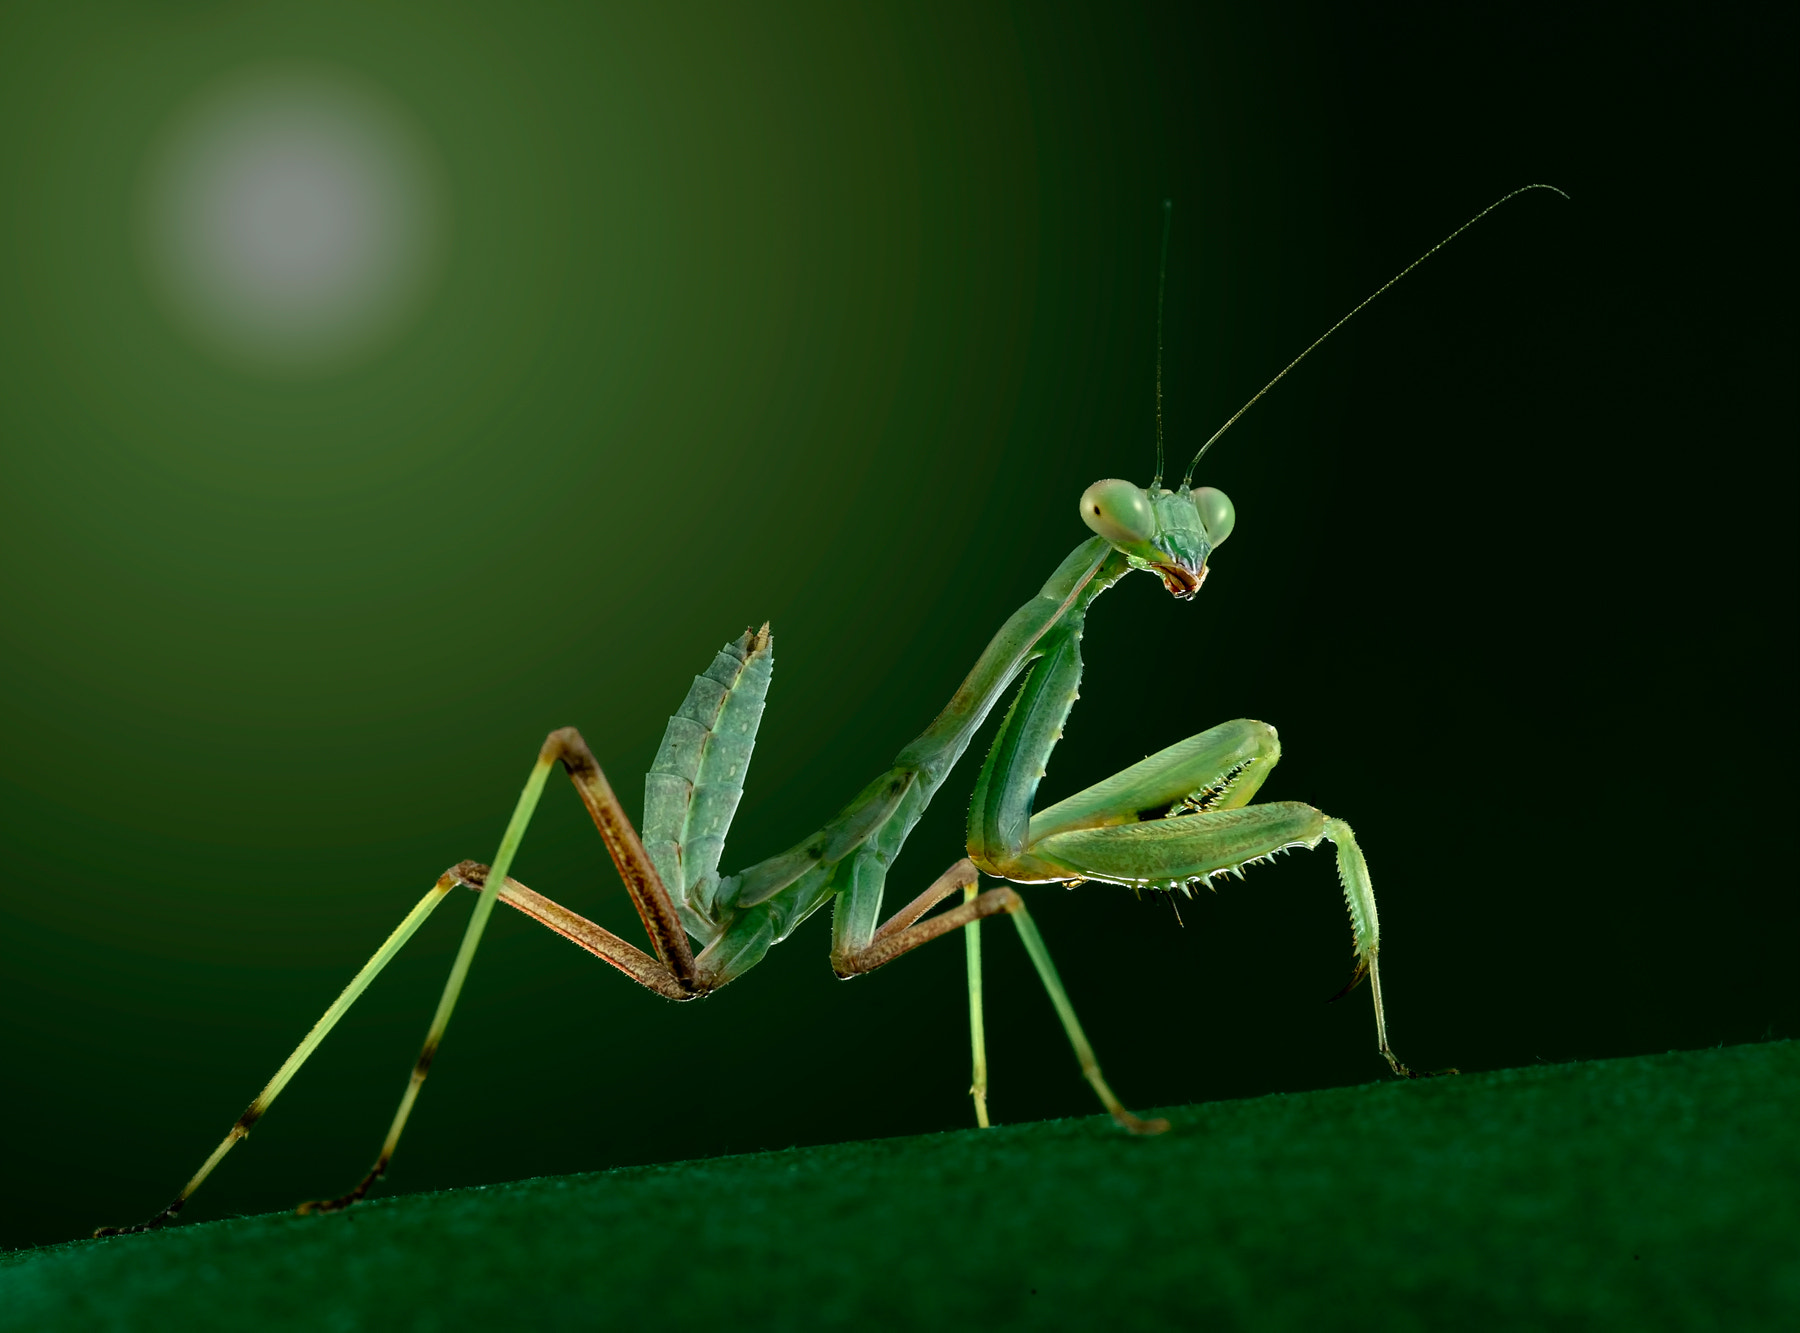 Photograph mantis by Charles Charalambous on 500px